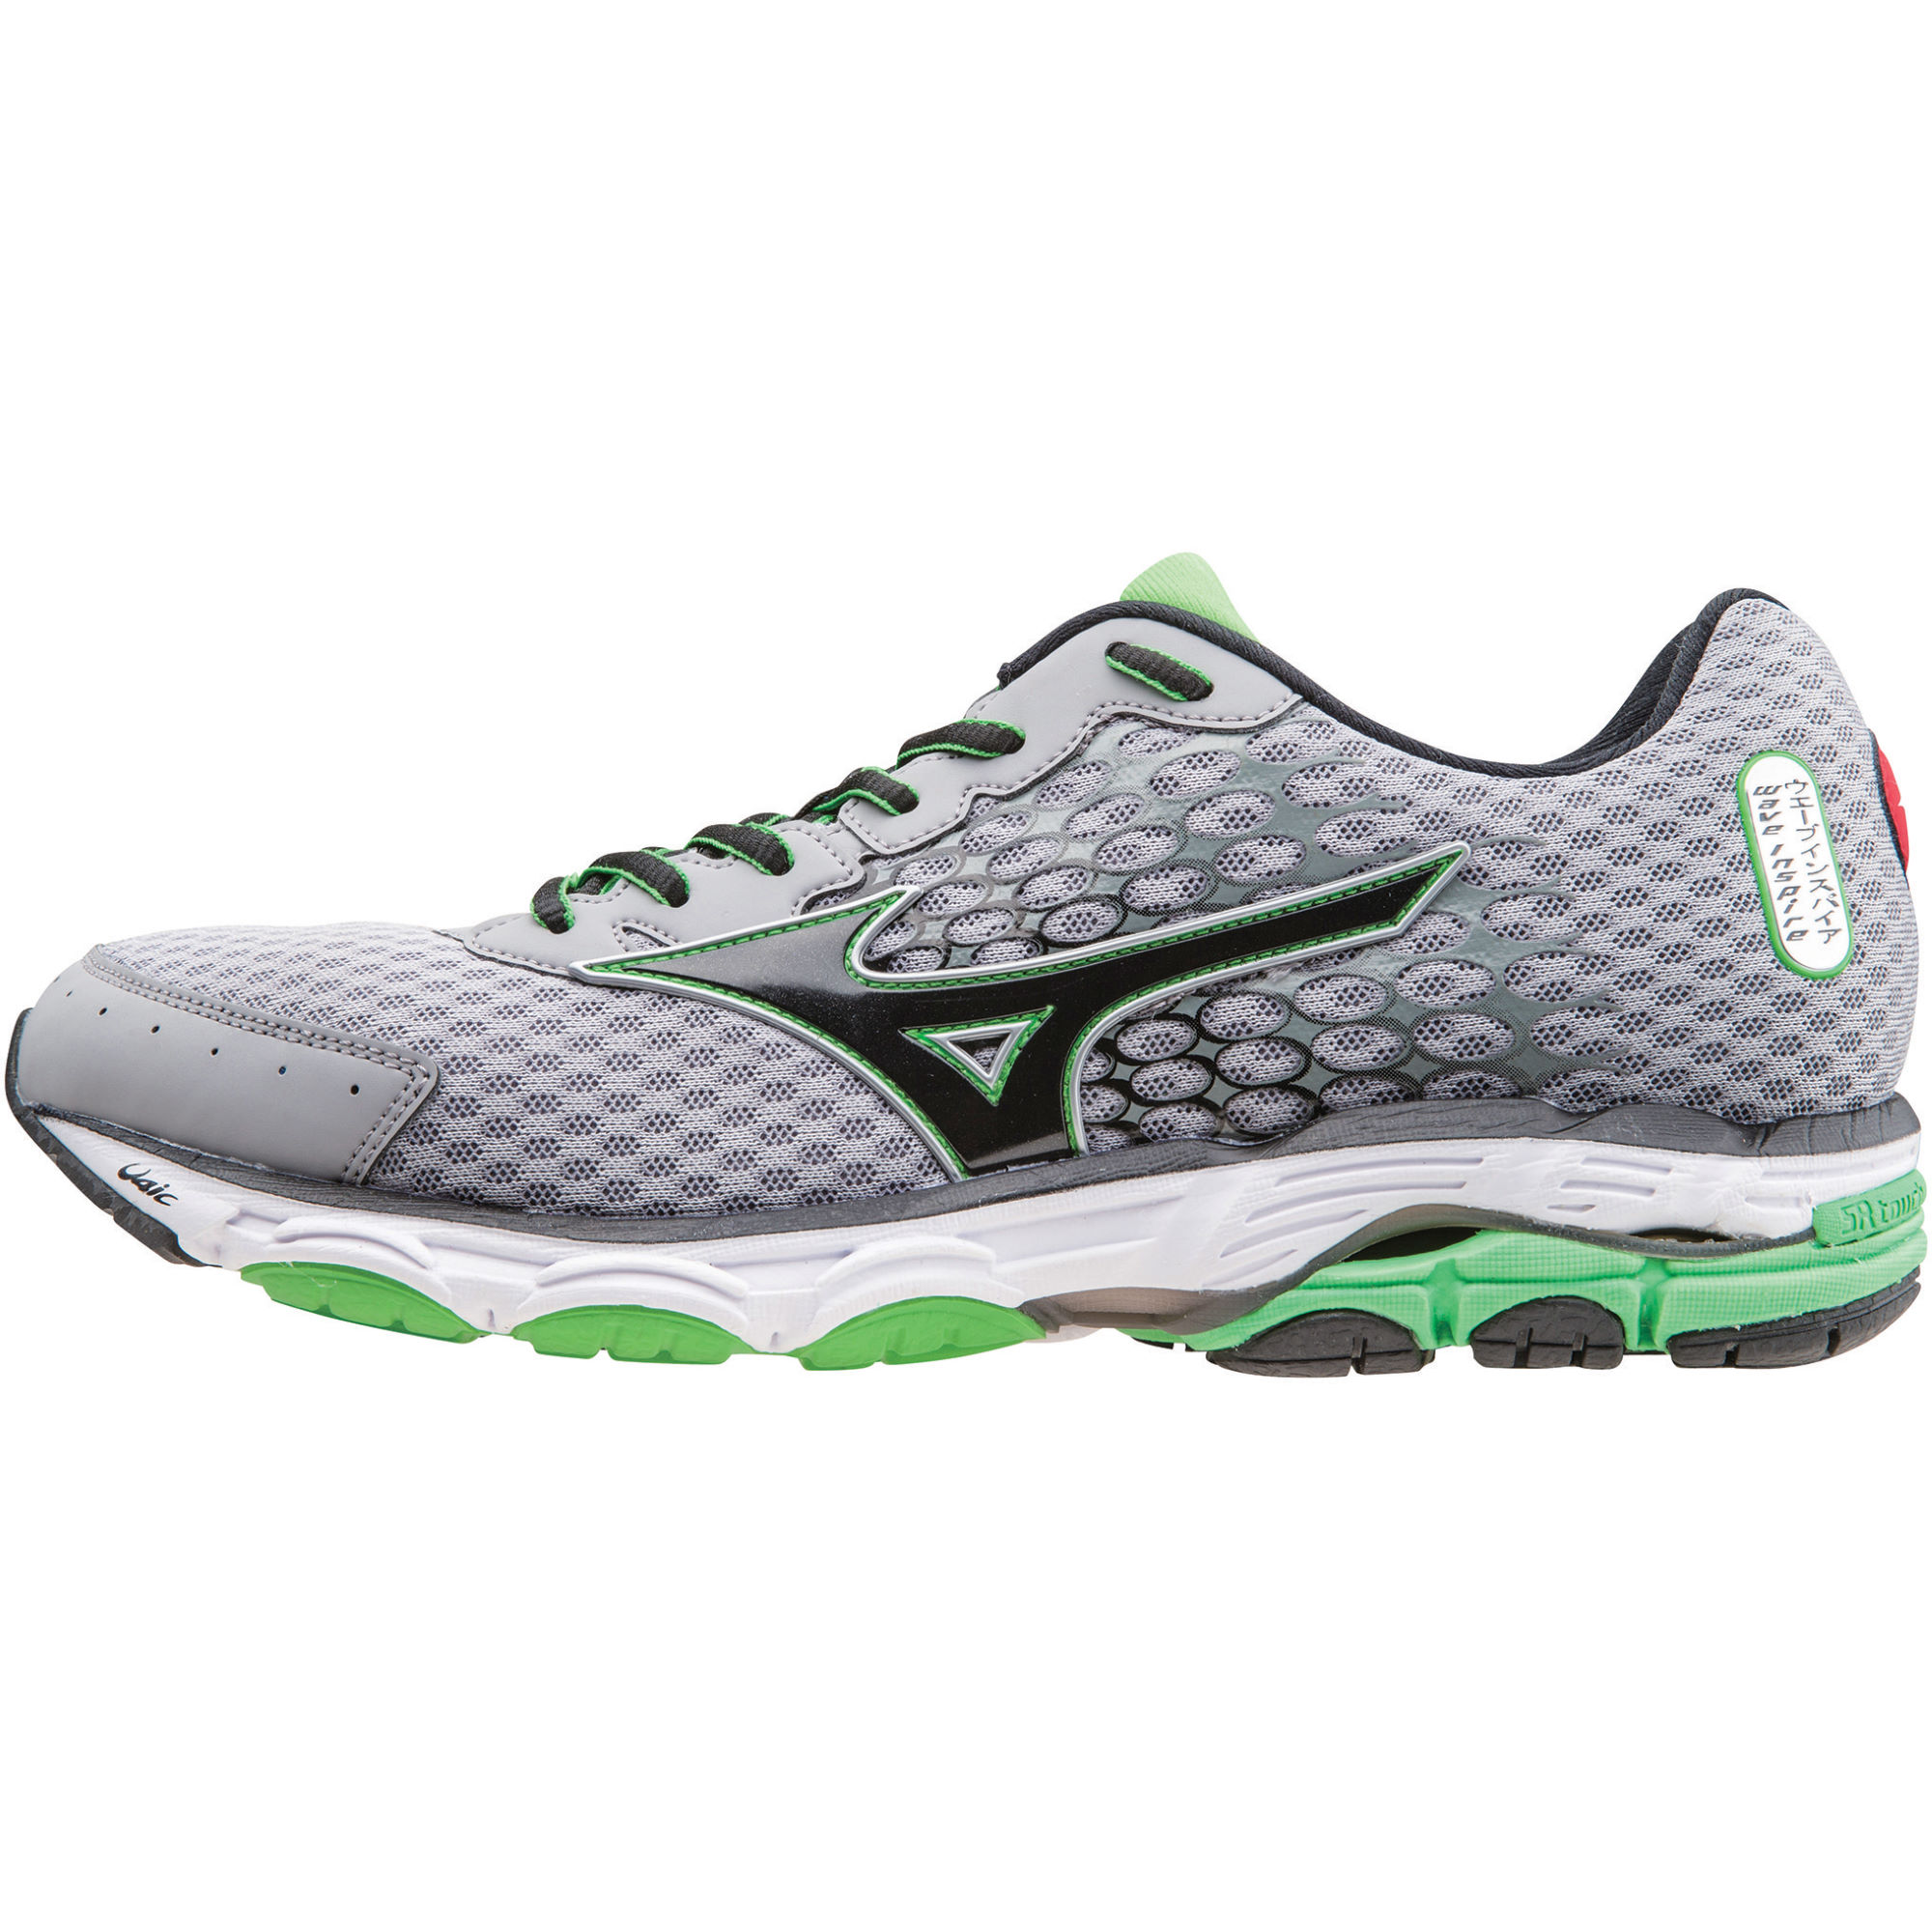 0086191788a6 Wiggle Cycle To Work | Mizuno Wave Inspire 11 Shoes - SS15 | Running ...